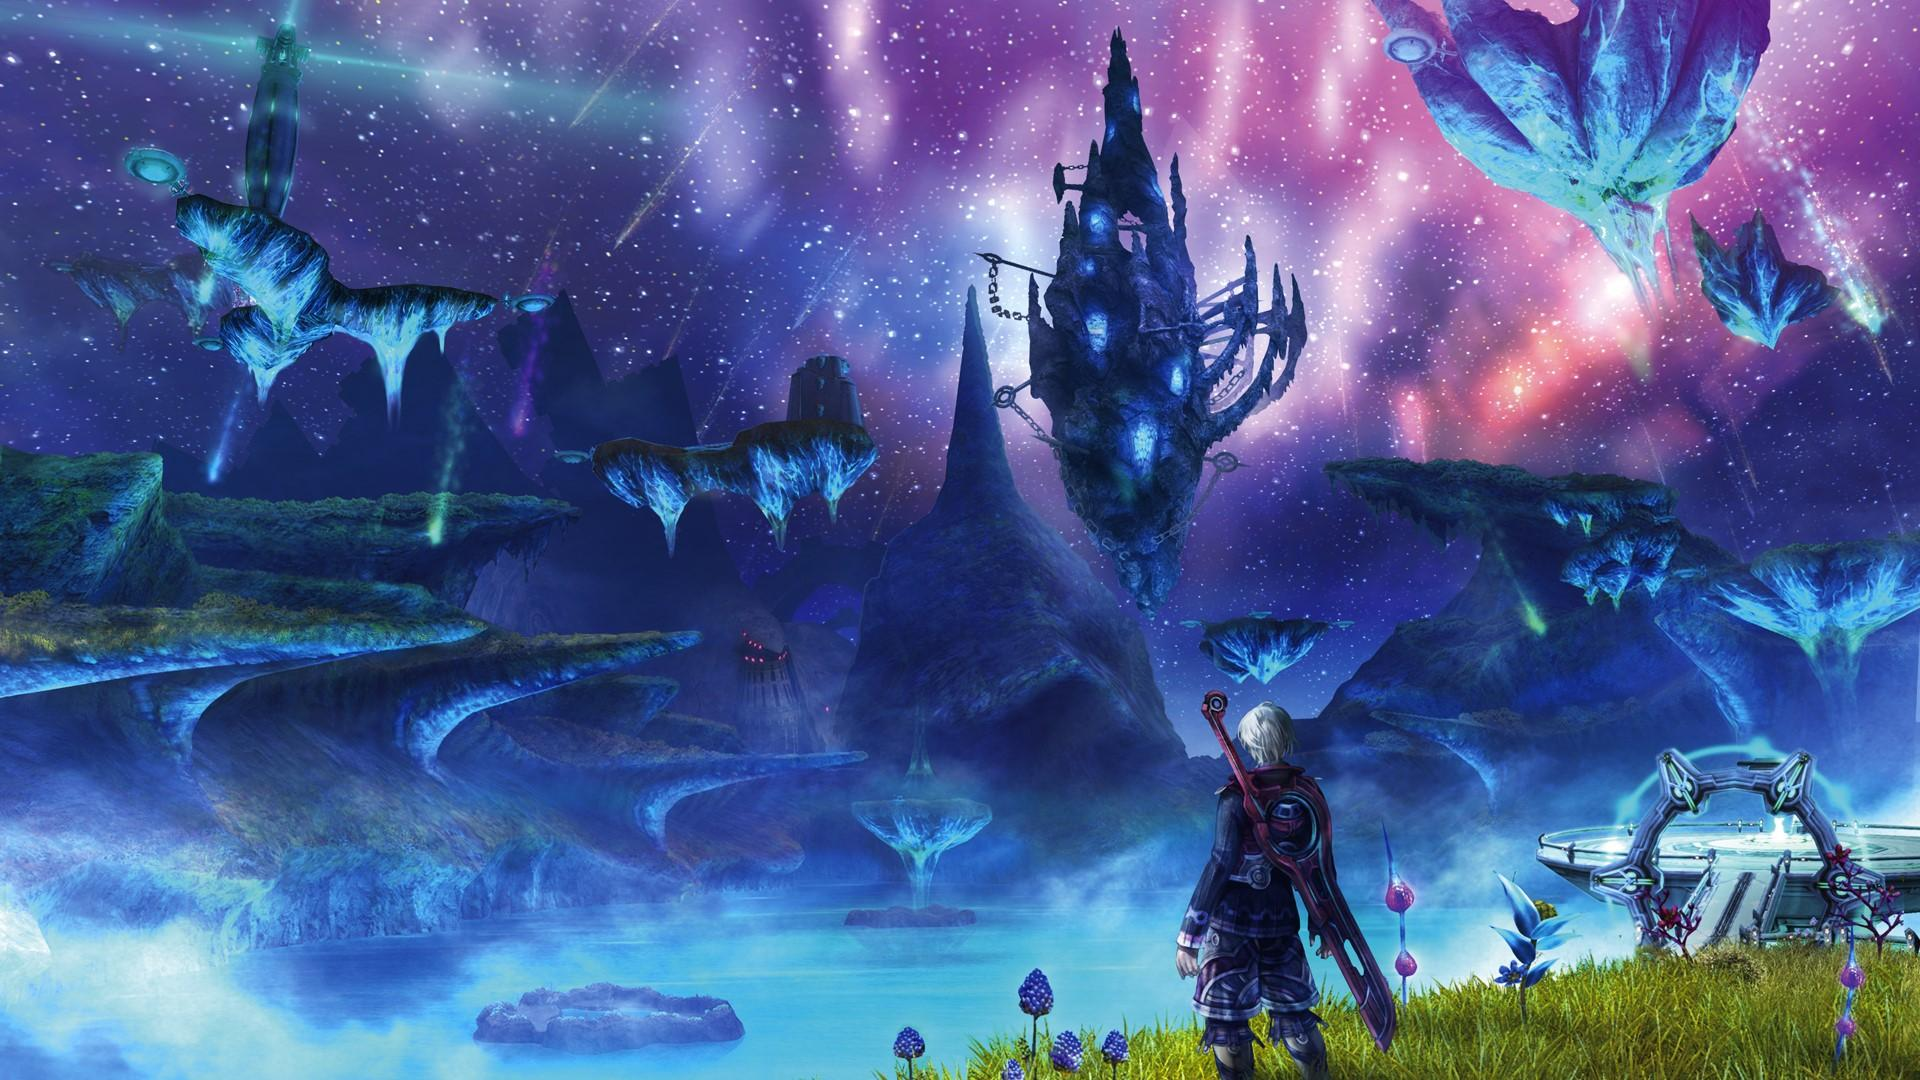 Xenoblade Chronicles Background Posted By Ethan Thompson